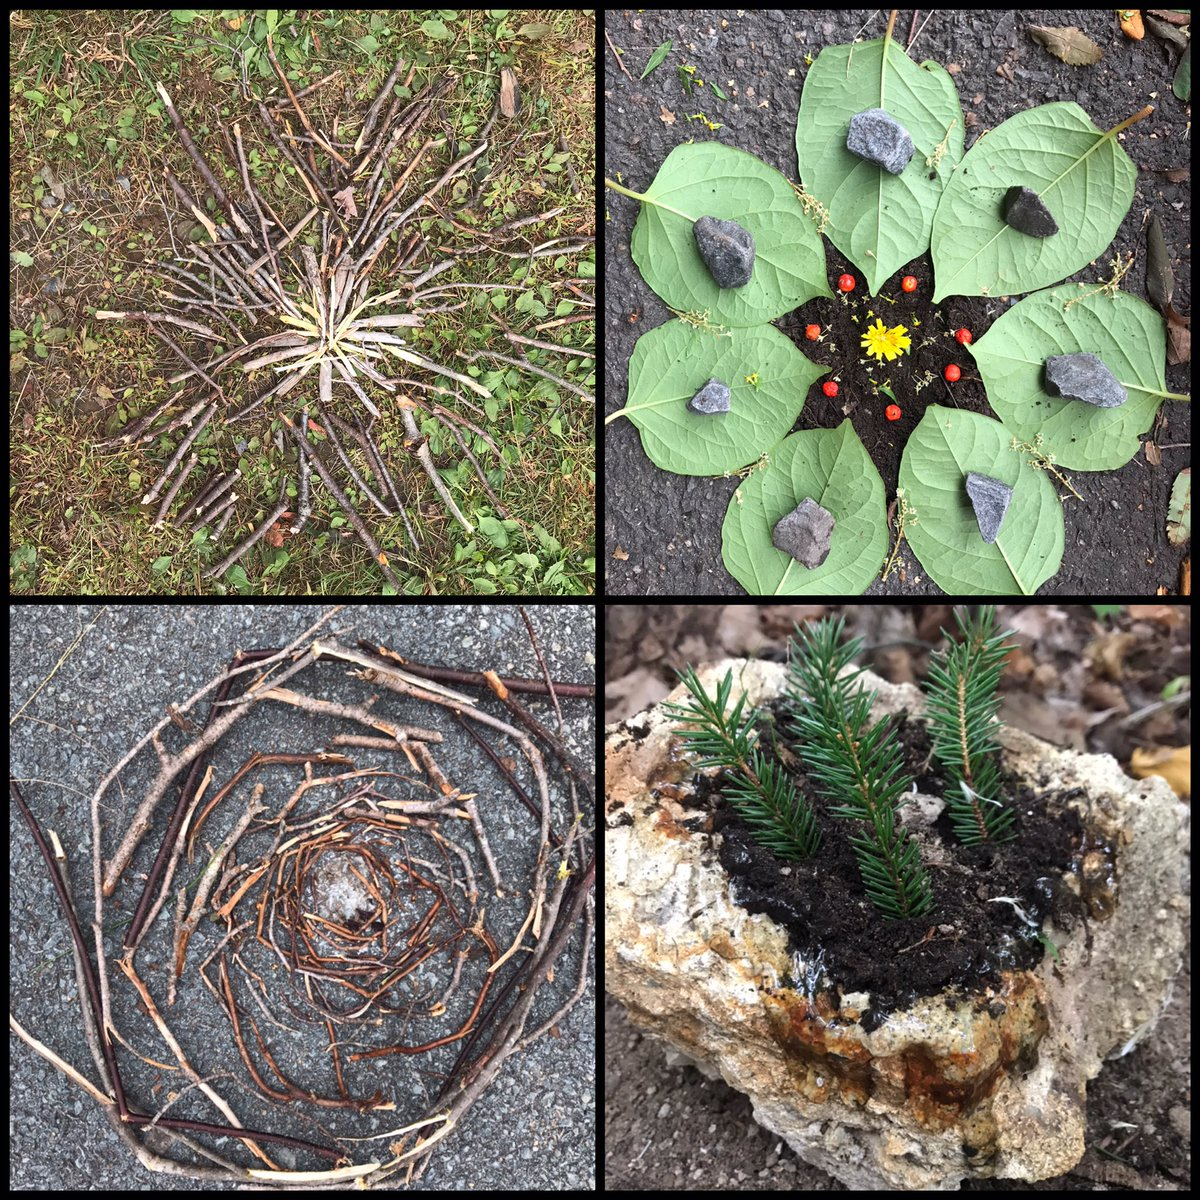 We were very inspired by Andy Goldsworthy's Environmental Art. A great day to get outside and create! https://t.co/2vEQWuYLjq